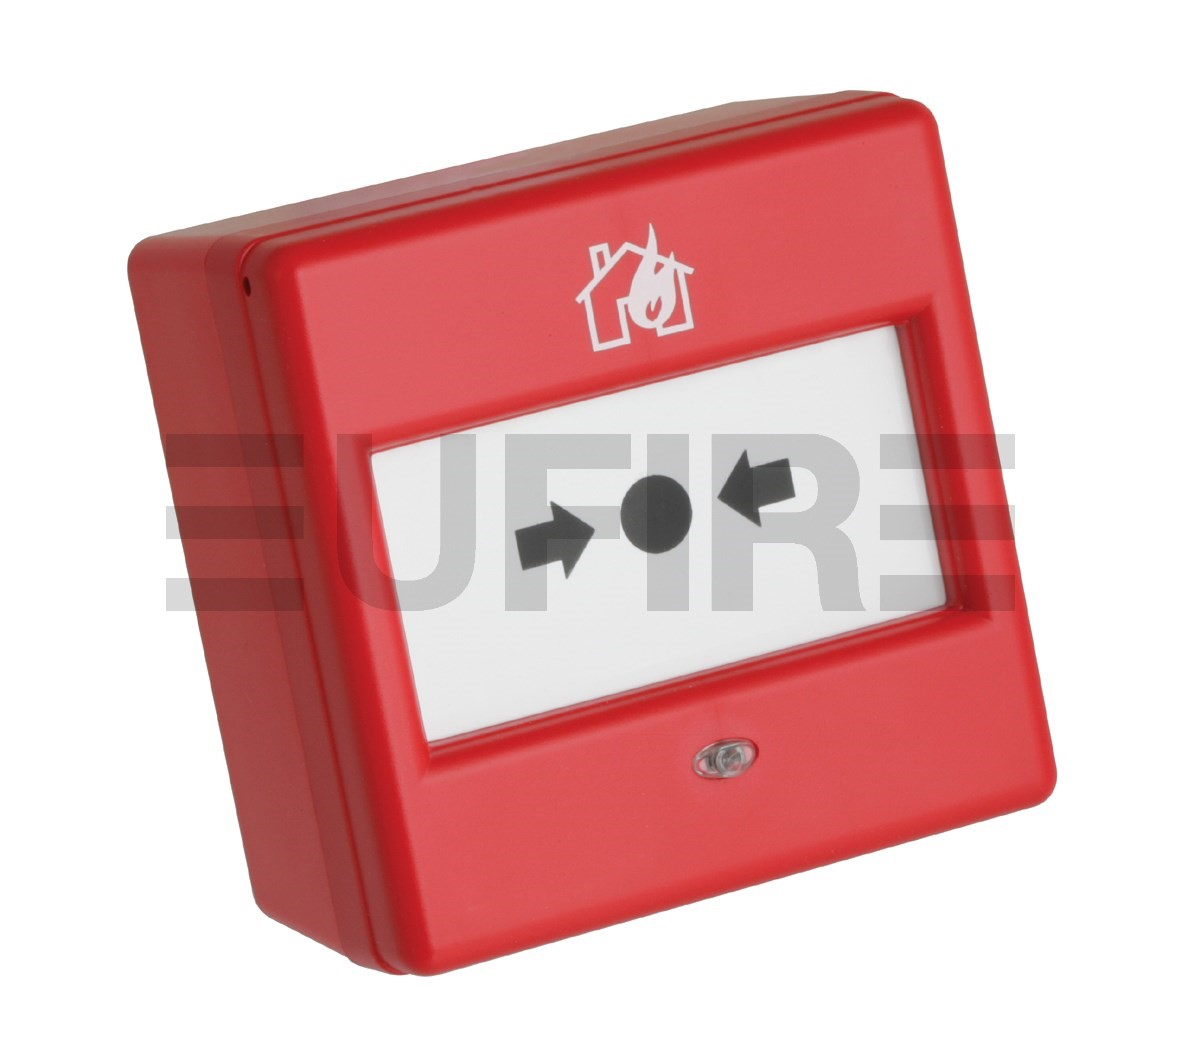 CP 1000 1?w=1170&h=820&scale=canvas fulleon universal callpoint product eu fire and security kac call point wiring diagram at bakdesigns.co